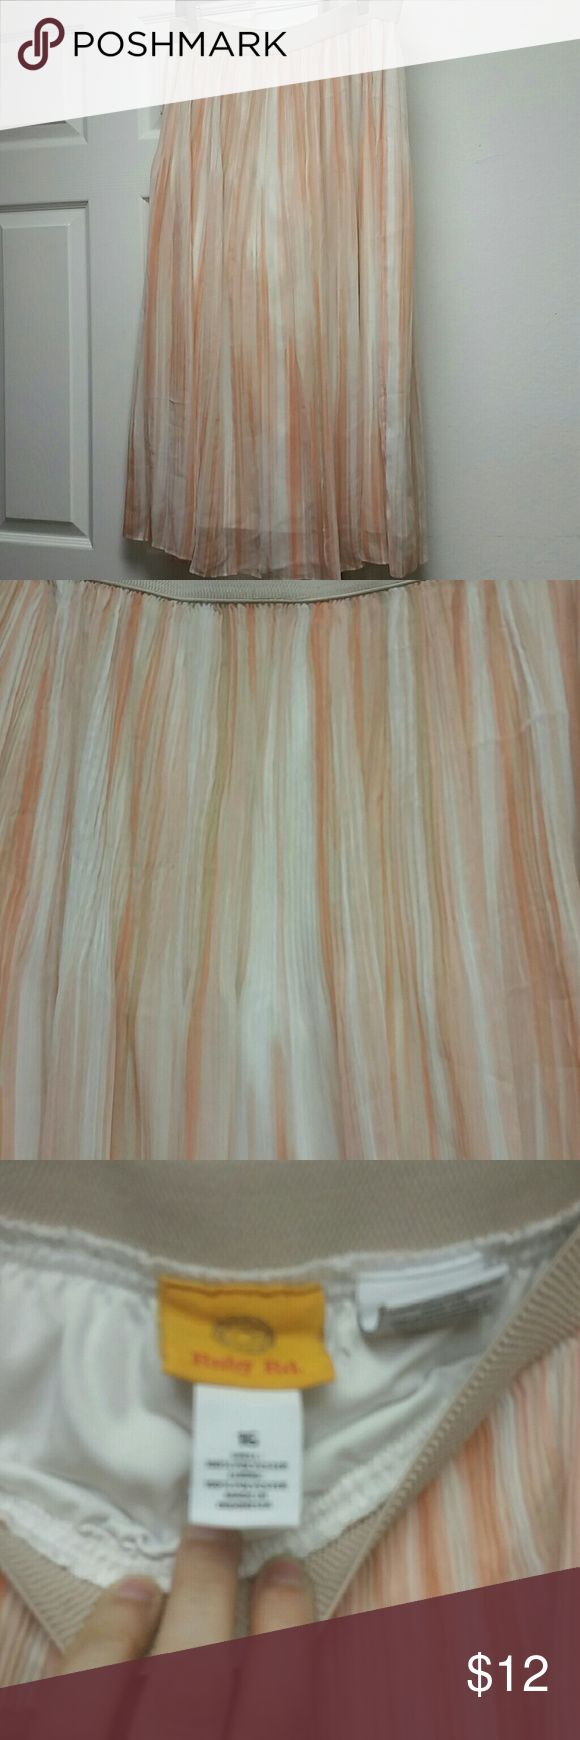 Maxi skirt Ruby Red woman's shades of peach lined maxi skirt. Has micro pleating detail at the top, more flowy at the bottom. Elastic waist. Perfect for spring and summer! Reasonable offers accepted through offer button. Smoke free, pet friendly home. Skirts